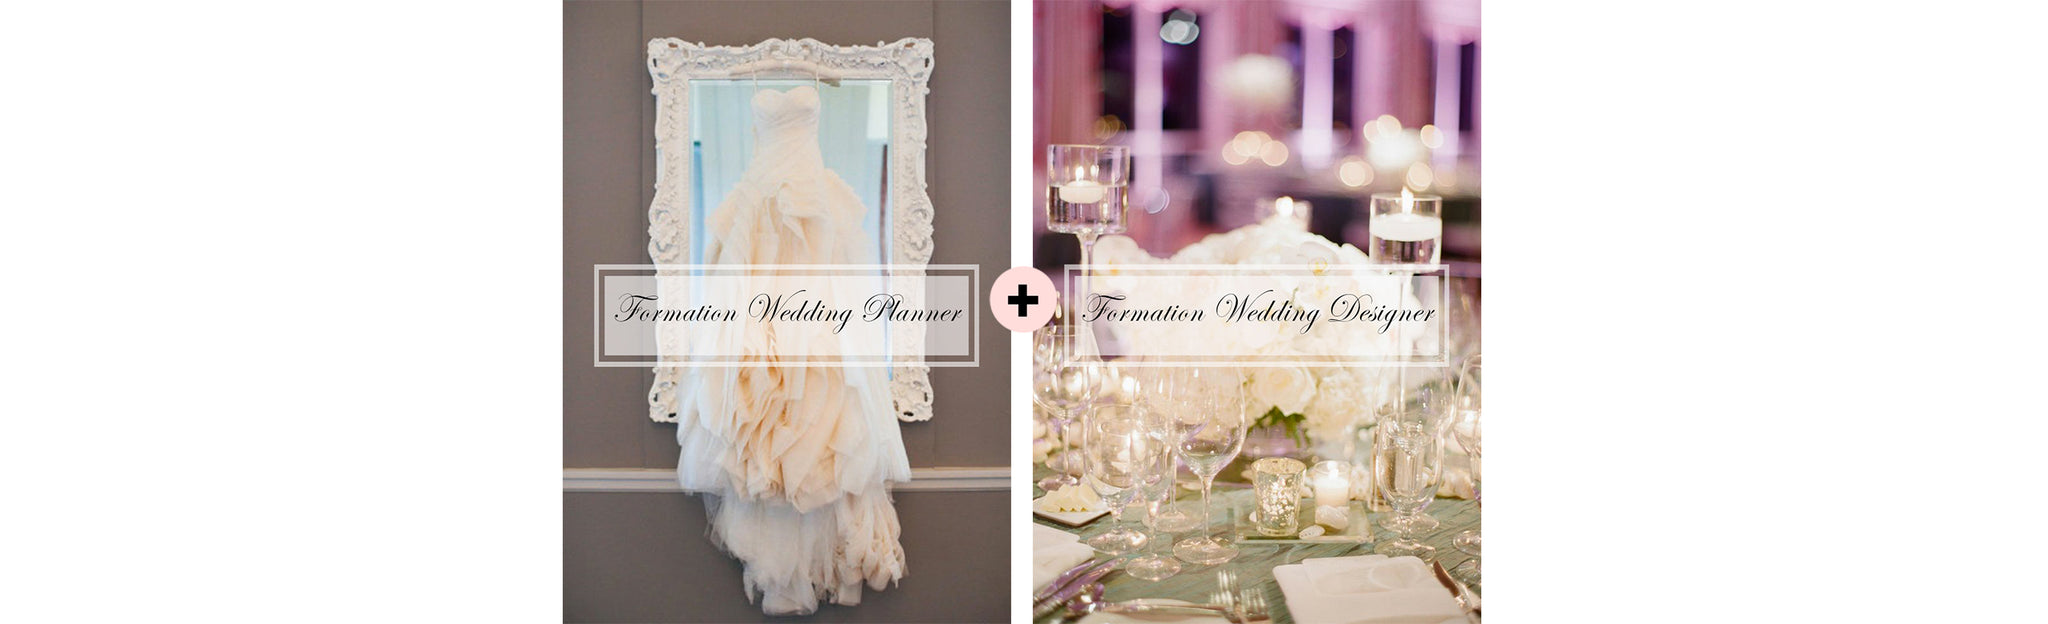 Wedding Expert - Seminaire